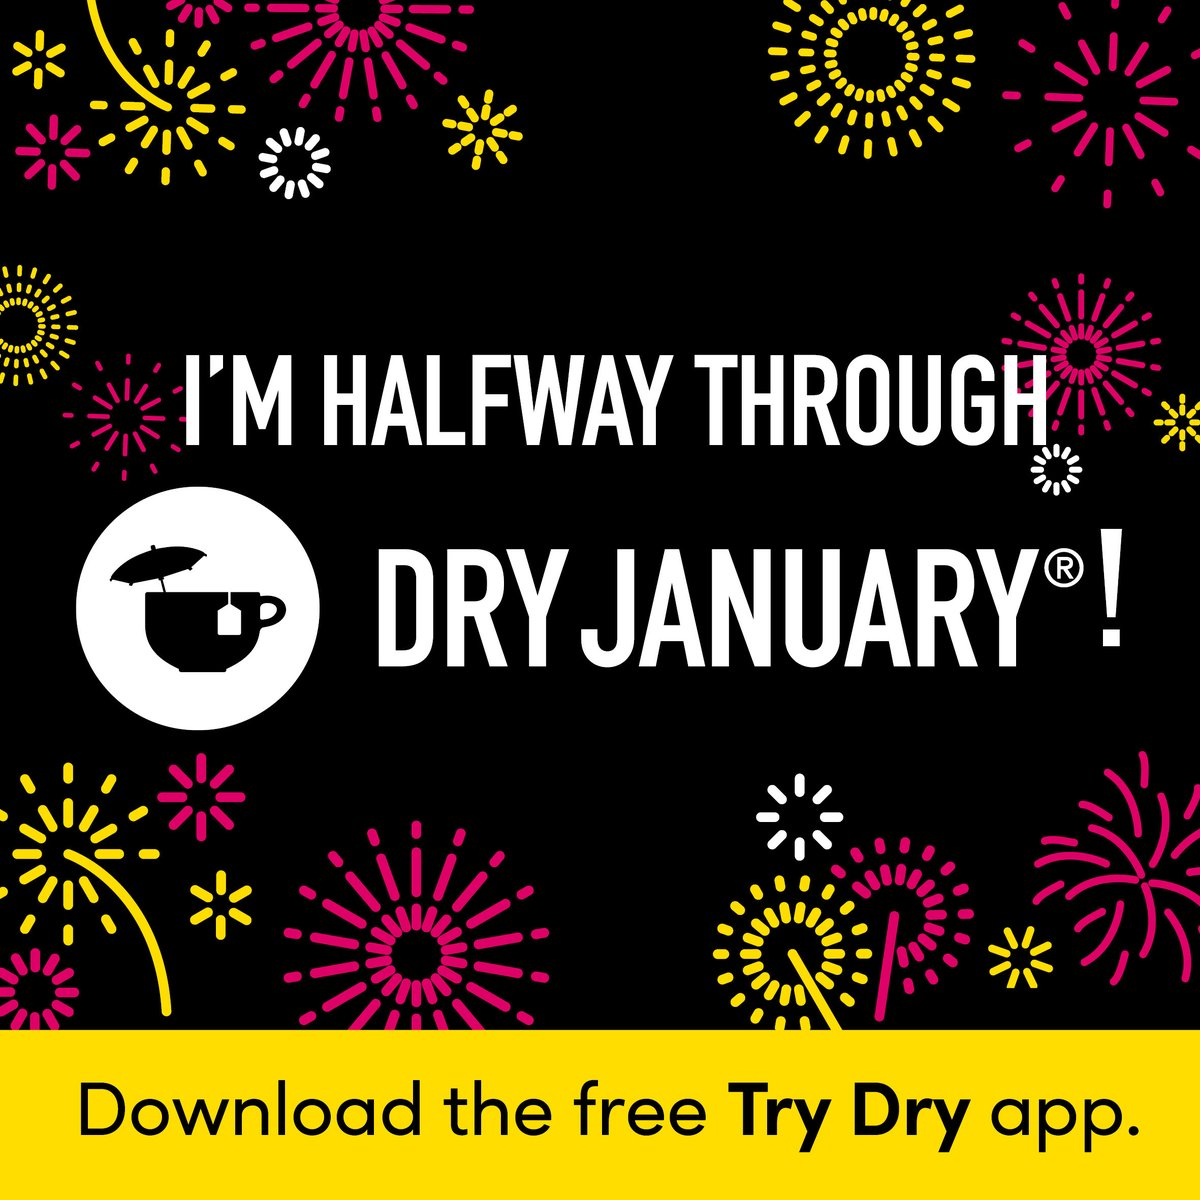 For those who are attempting #DryJanuary, you're over halfway there!! Keep going, you've got this! #DryJanuary2021 #staysafe #recovery